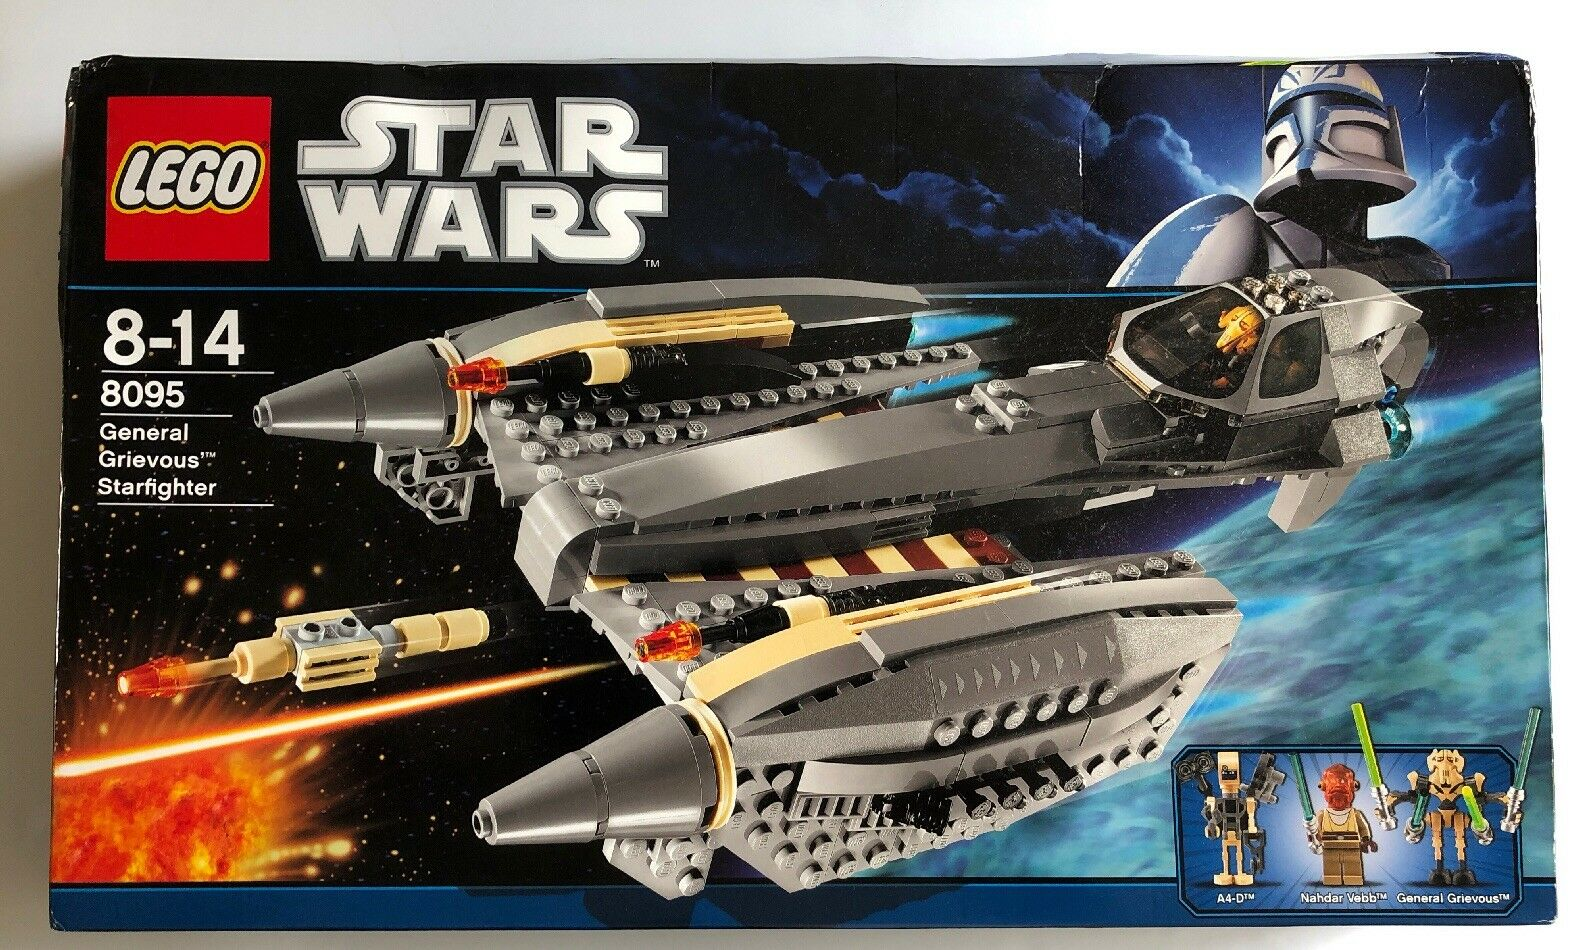 Lego Star Wars - General Grievous Starfighter - 8095 - New & Factory Sealed